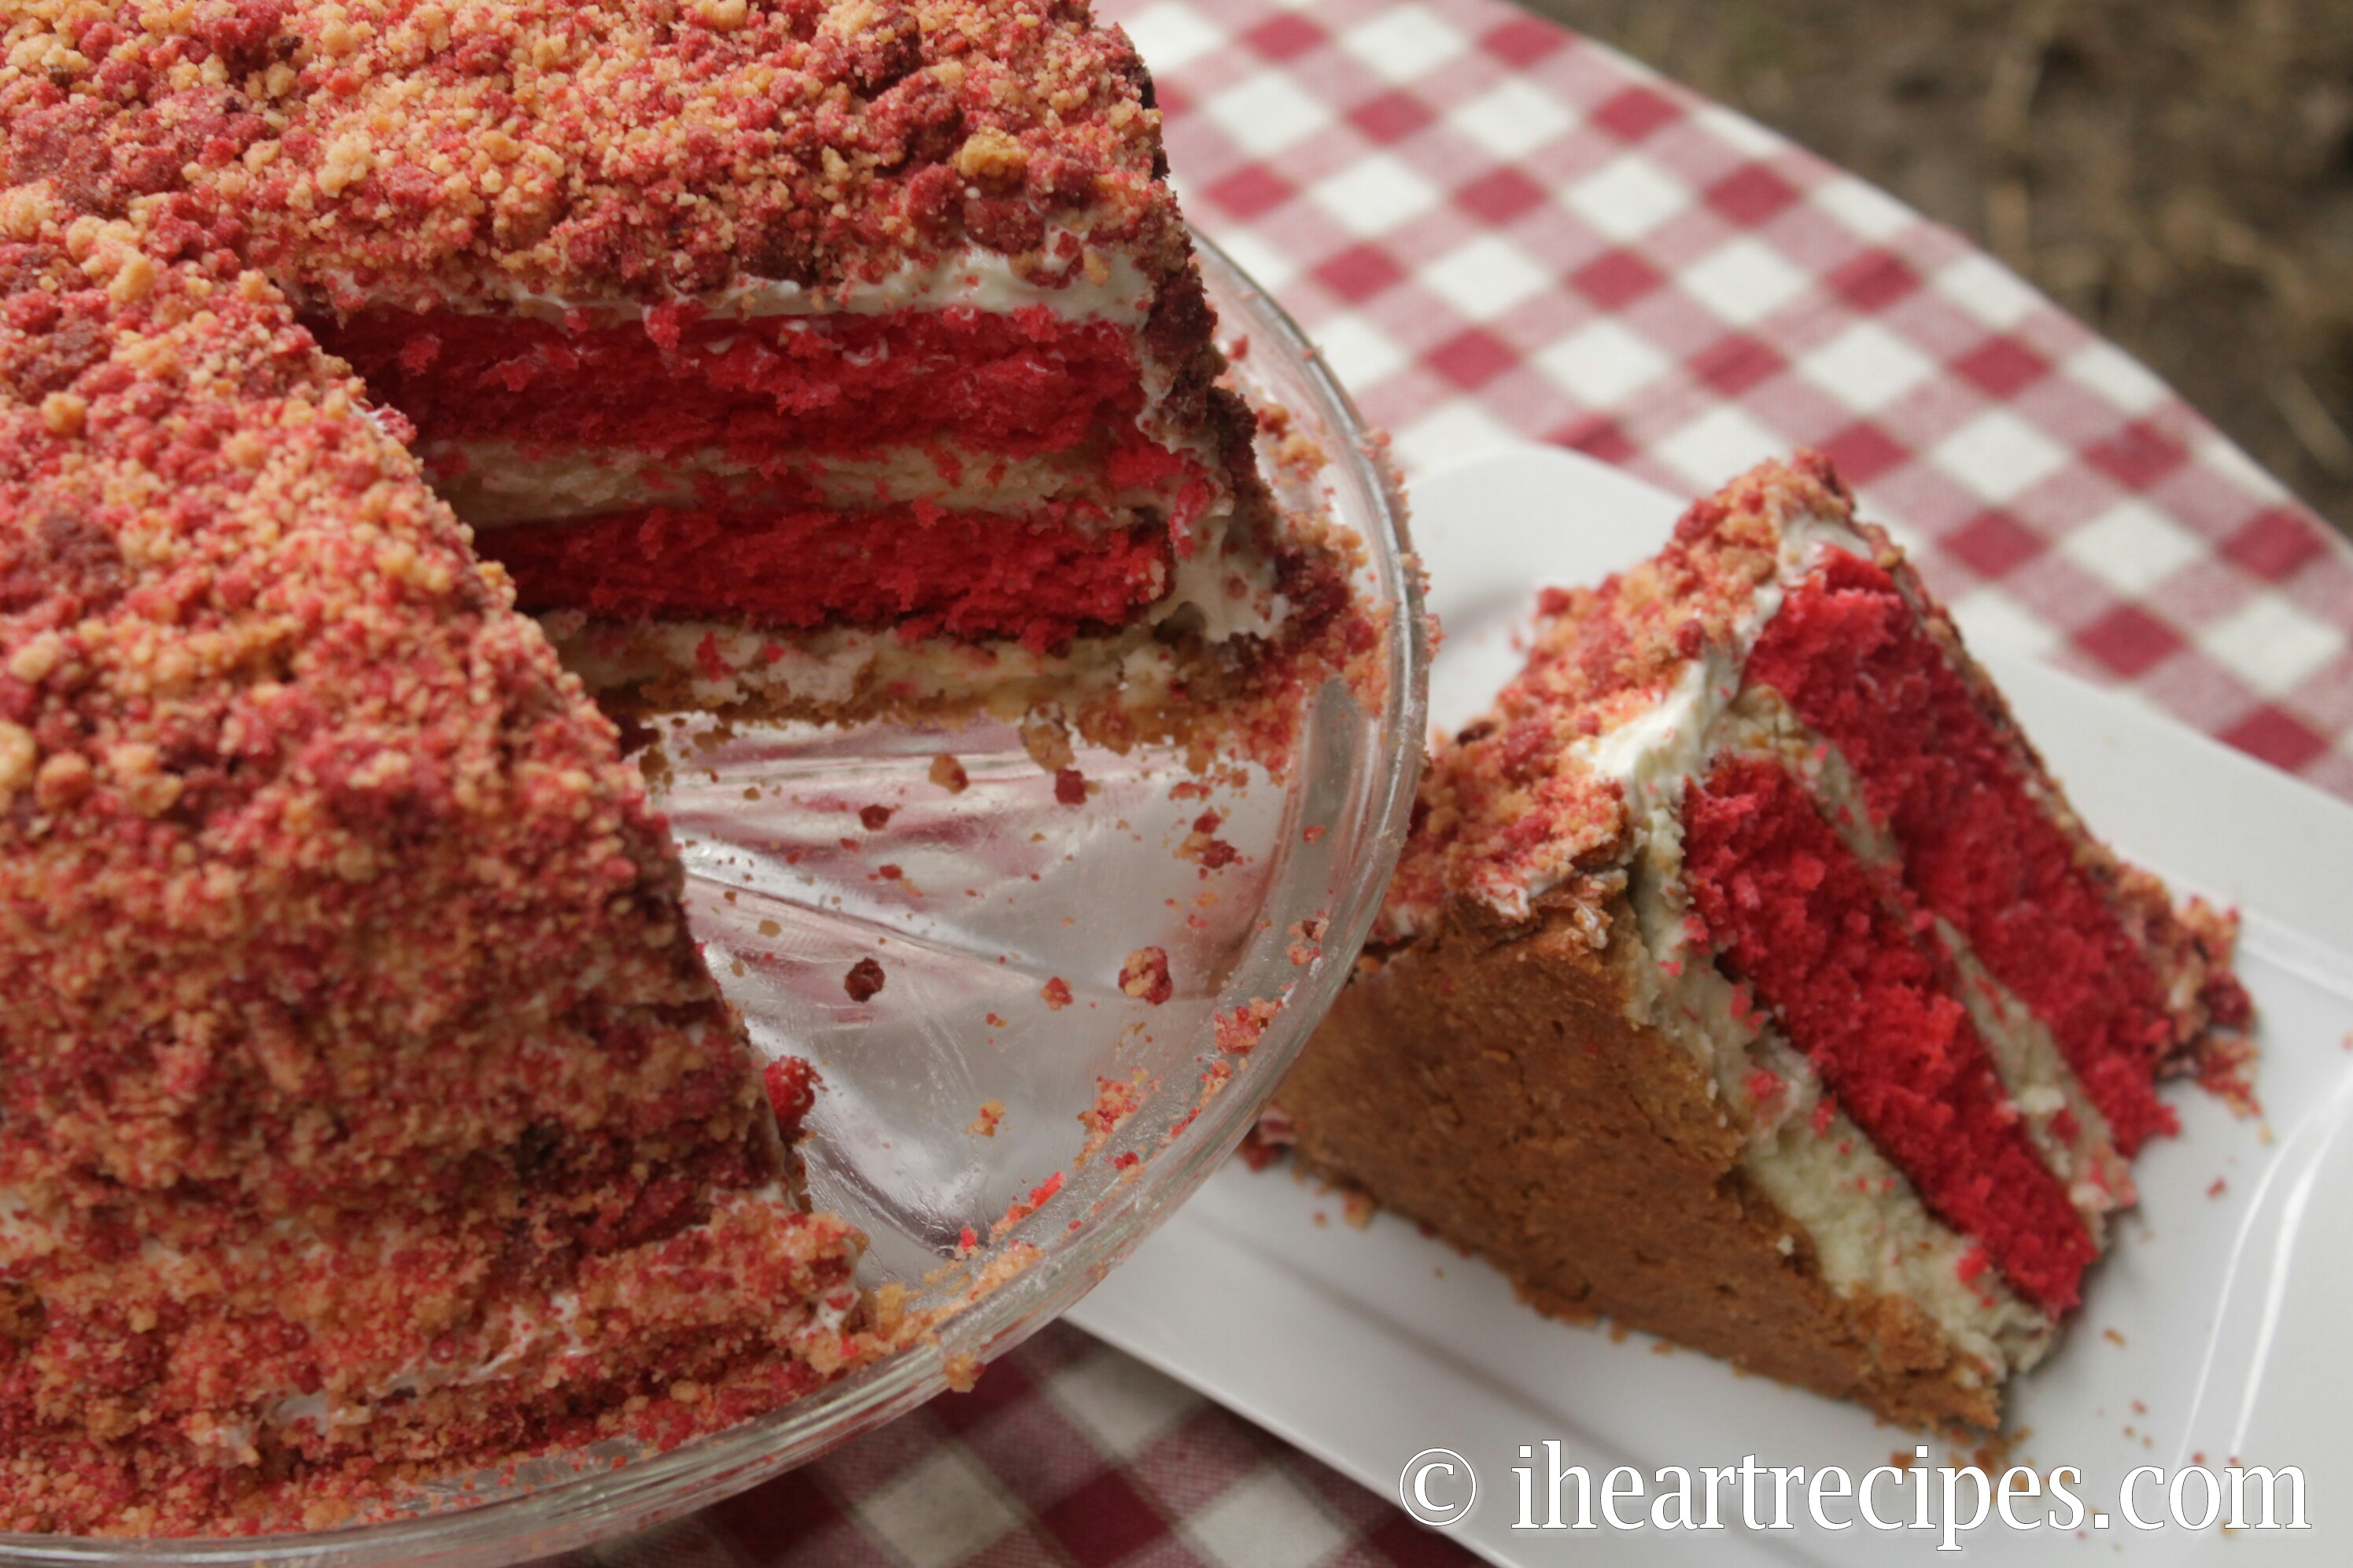 Here's a heart slice of the strawberry shortcake cheesecake